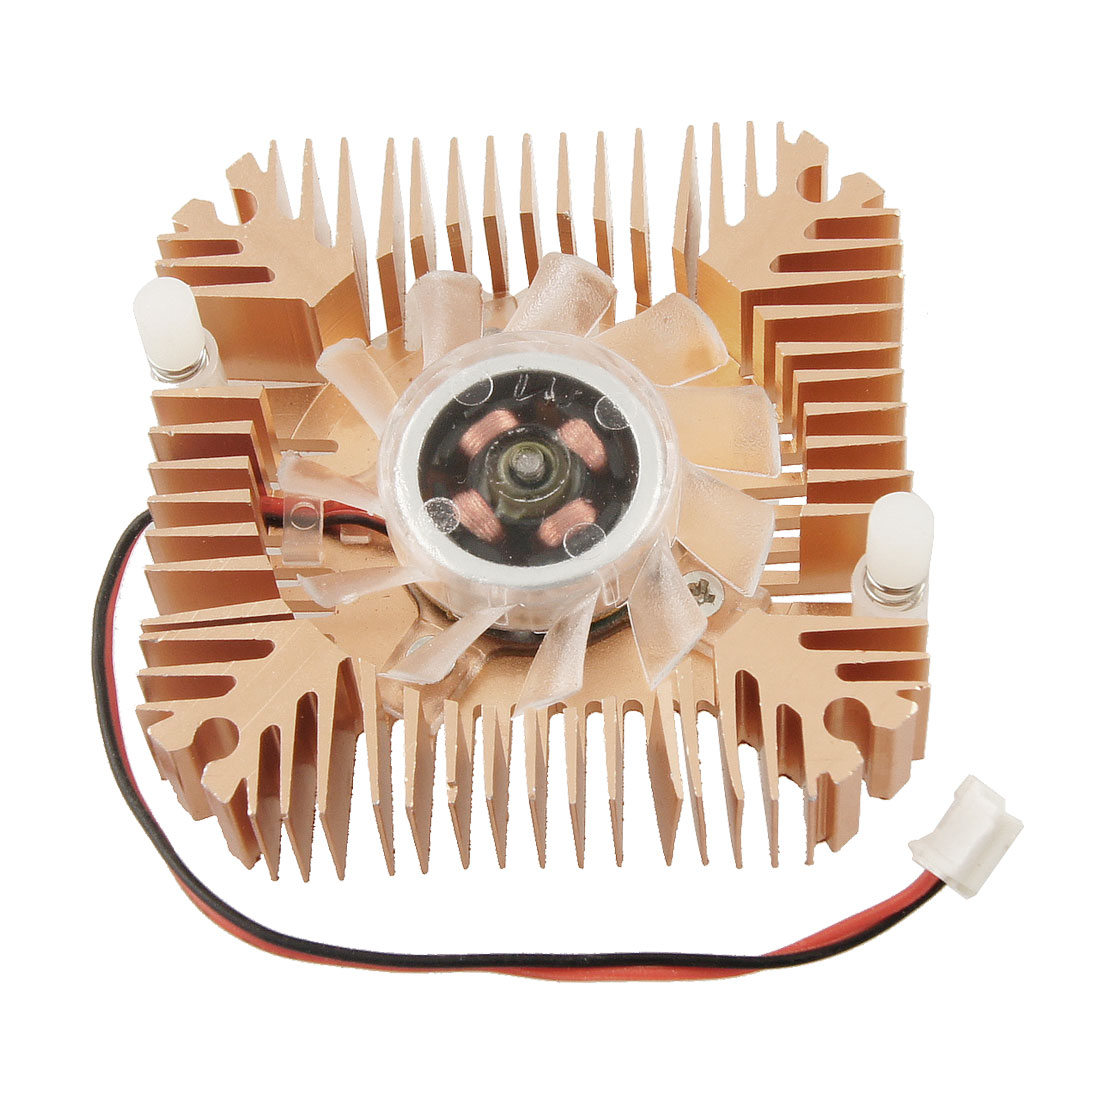 Copper Tone Square DC 12V 0.1A Video Card CPU Cooler Cooling Fan